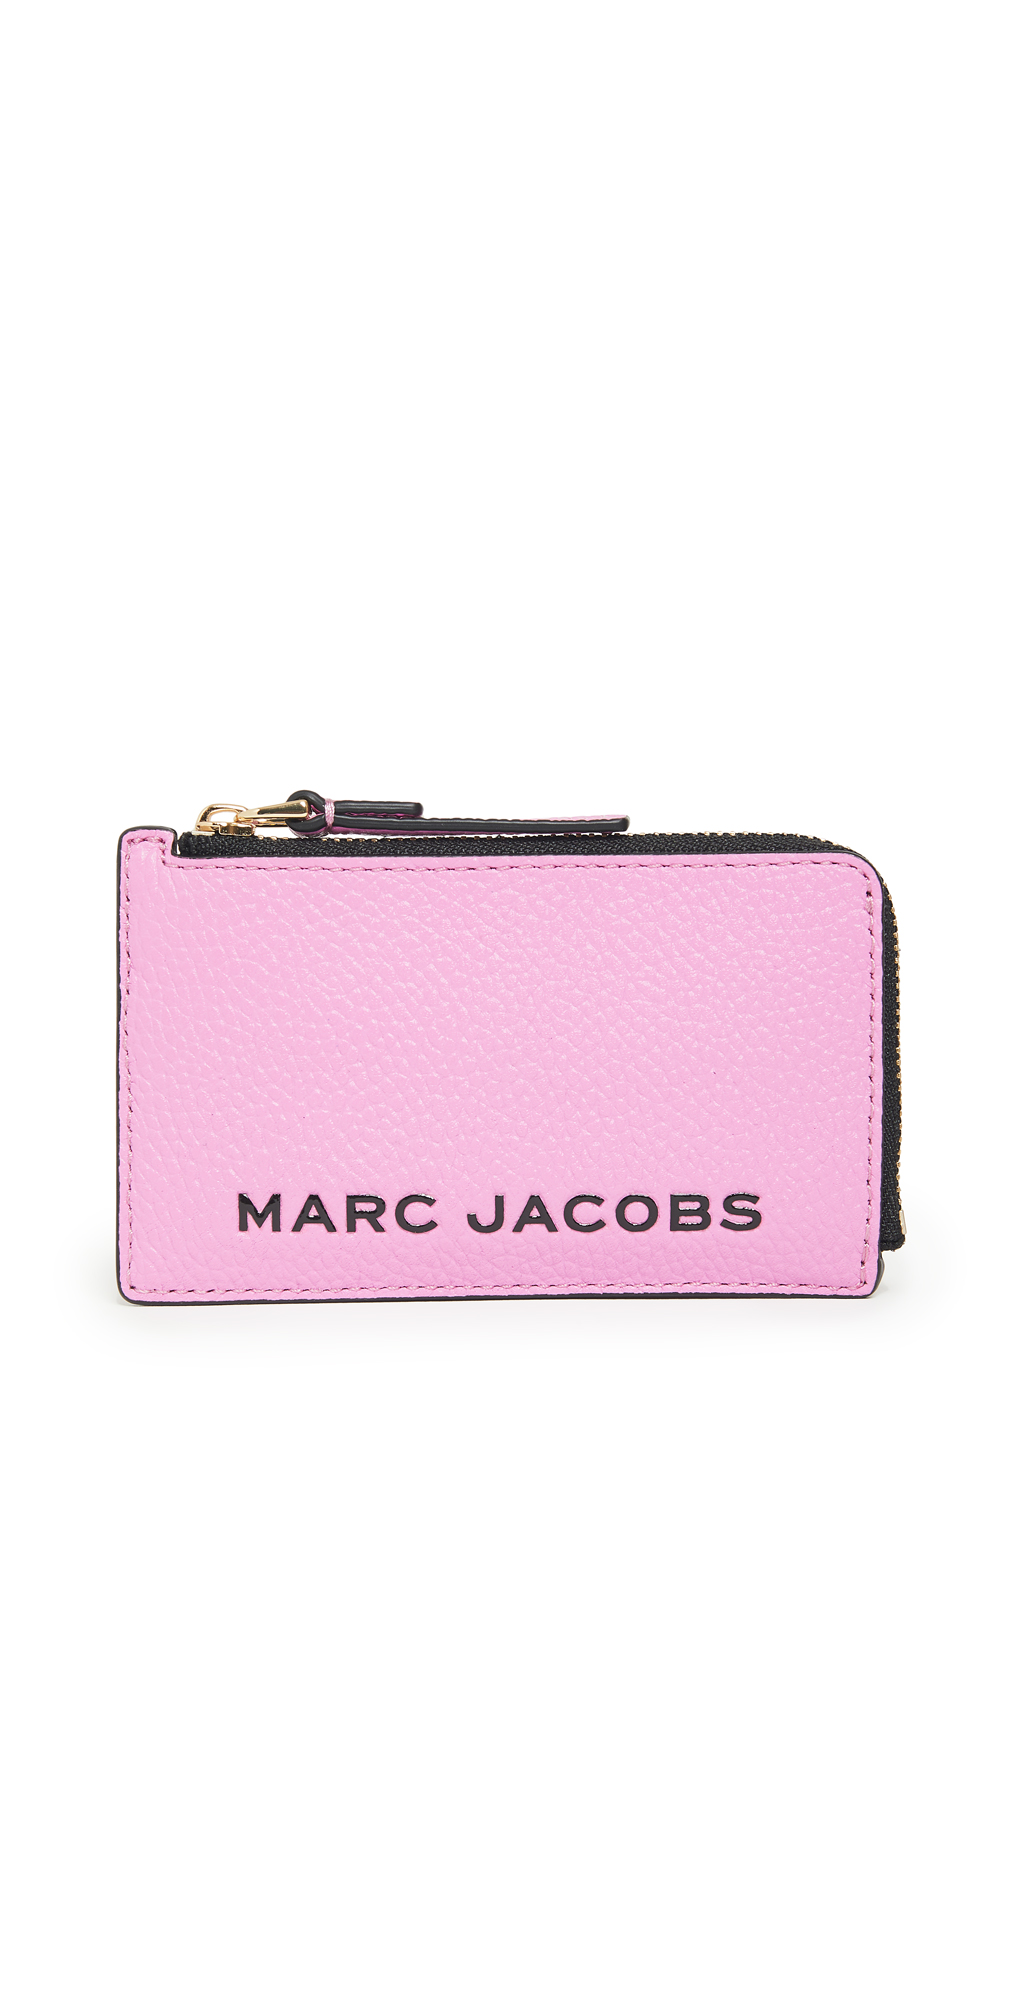 The Marc Jacobs Wallets SMALL TOP ZIP WALLET